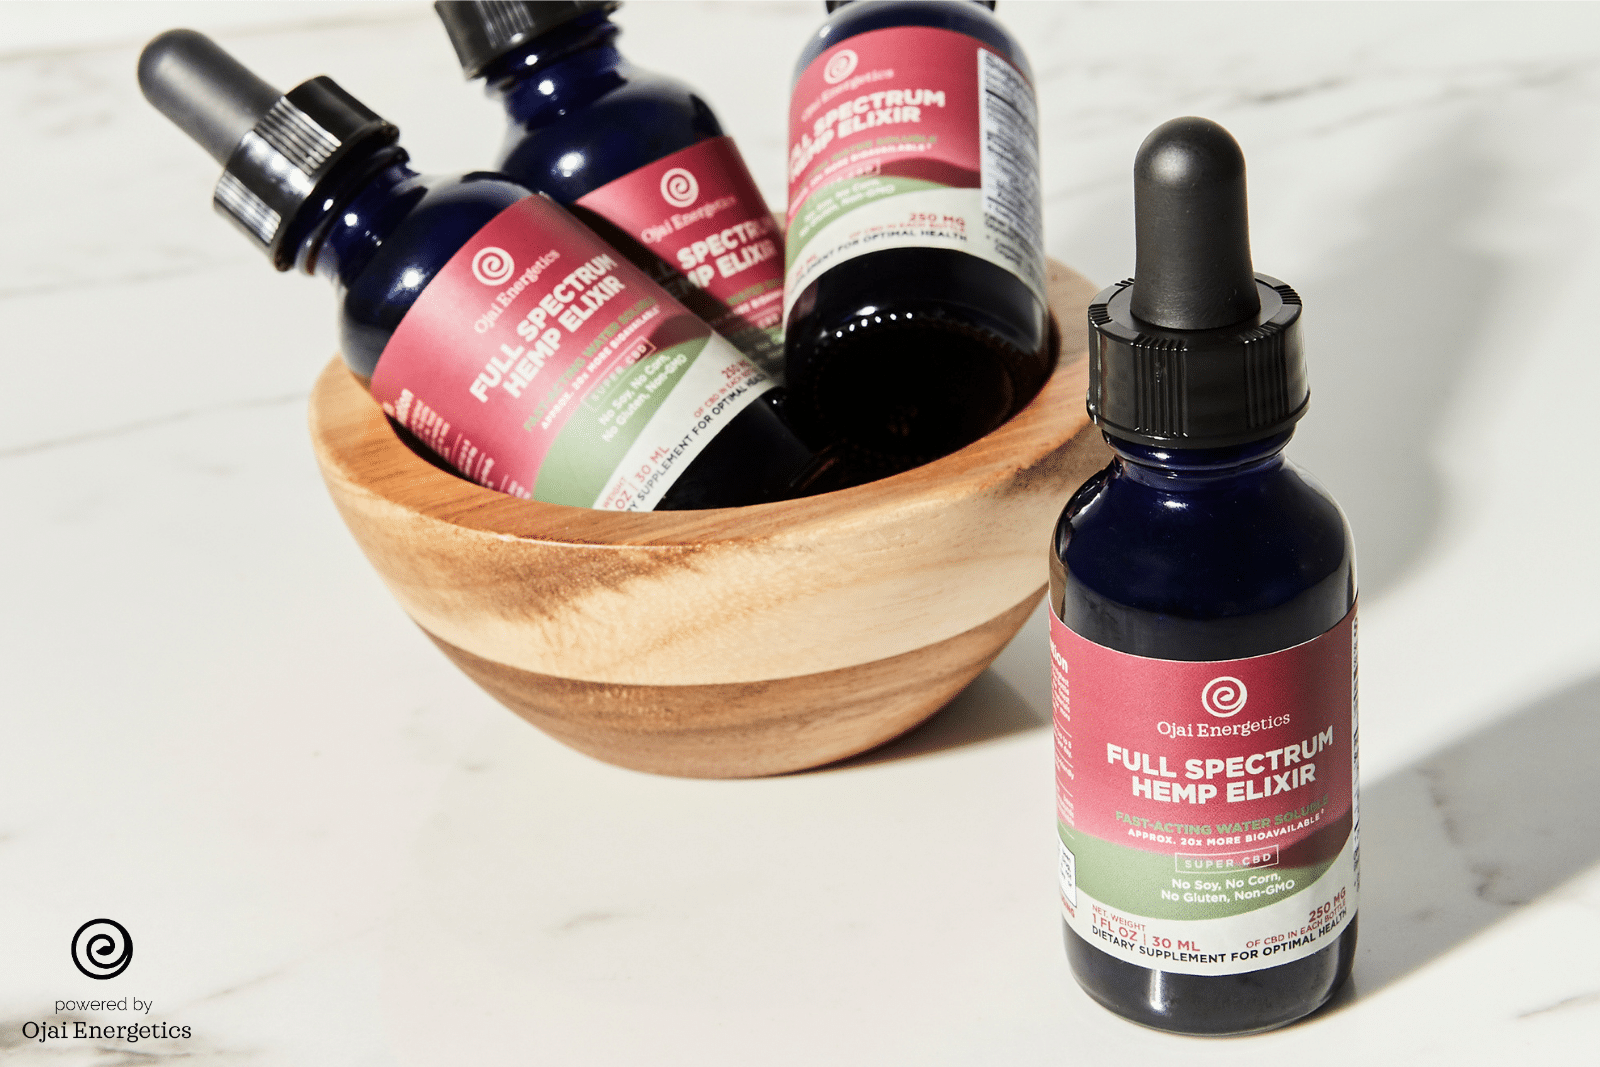 How to Use Water-Soluble CBD in A Daily Routine